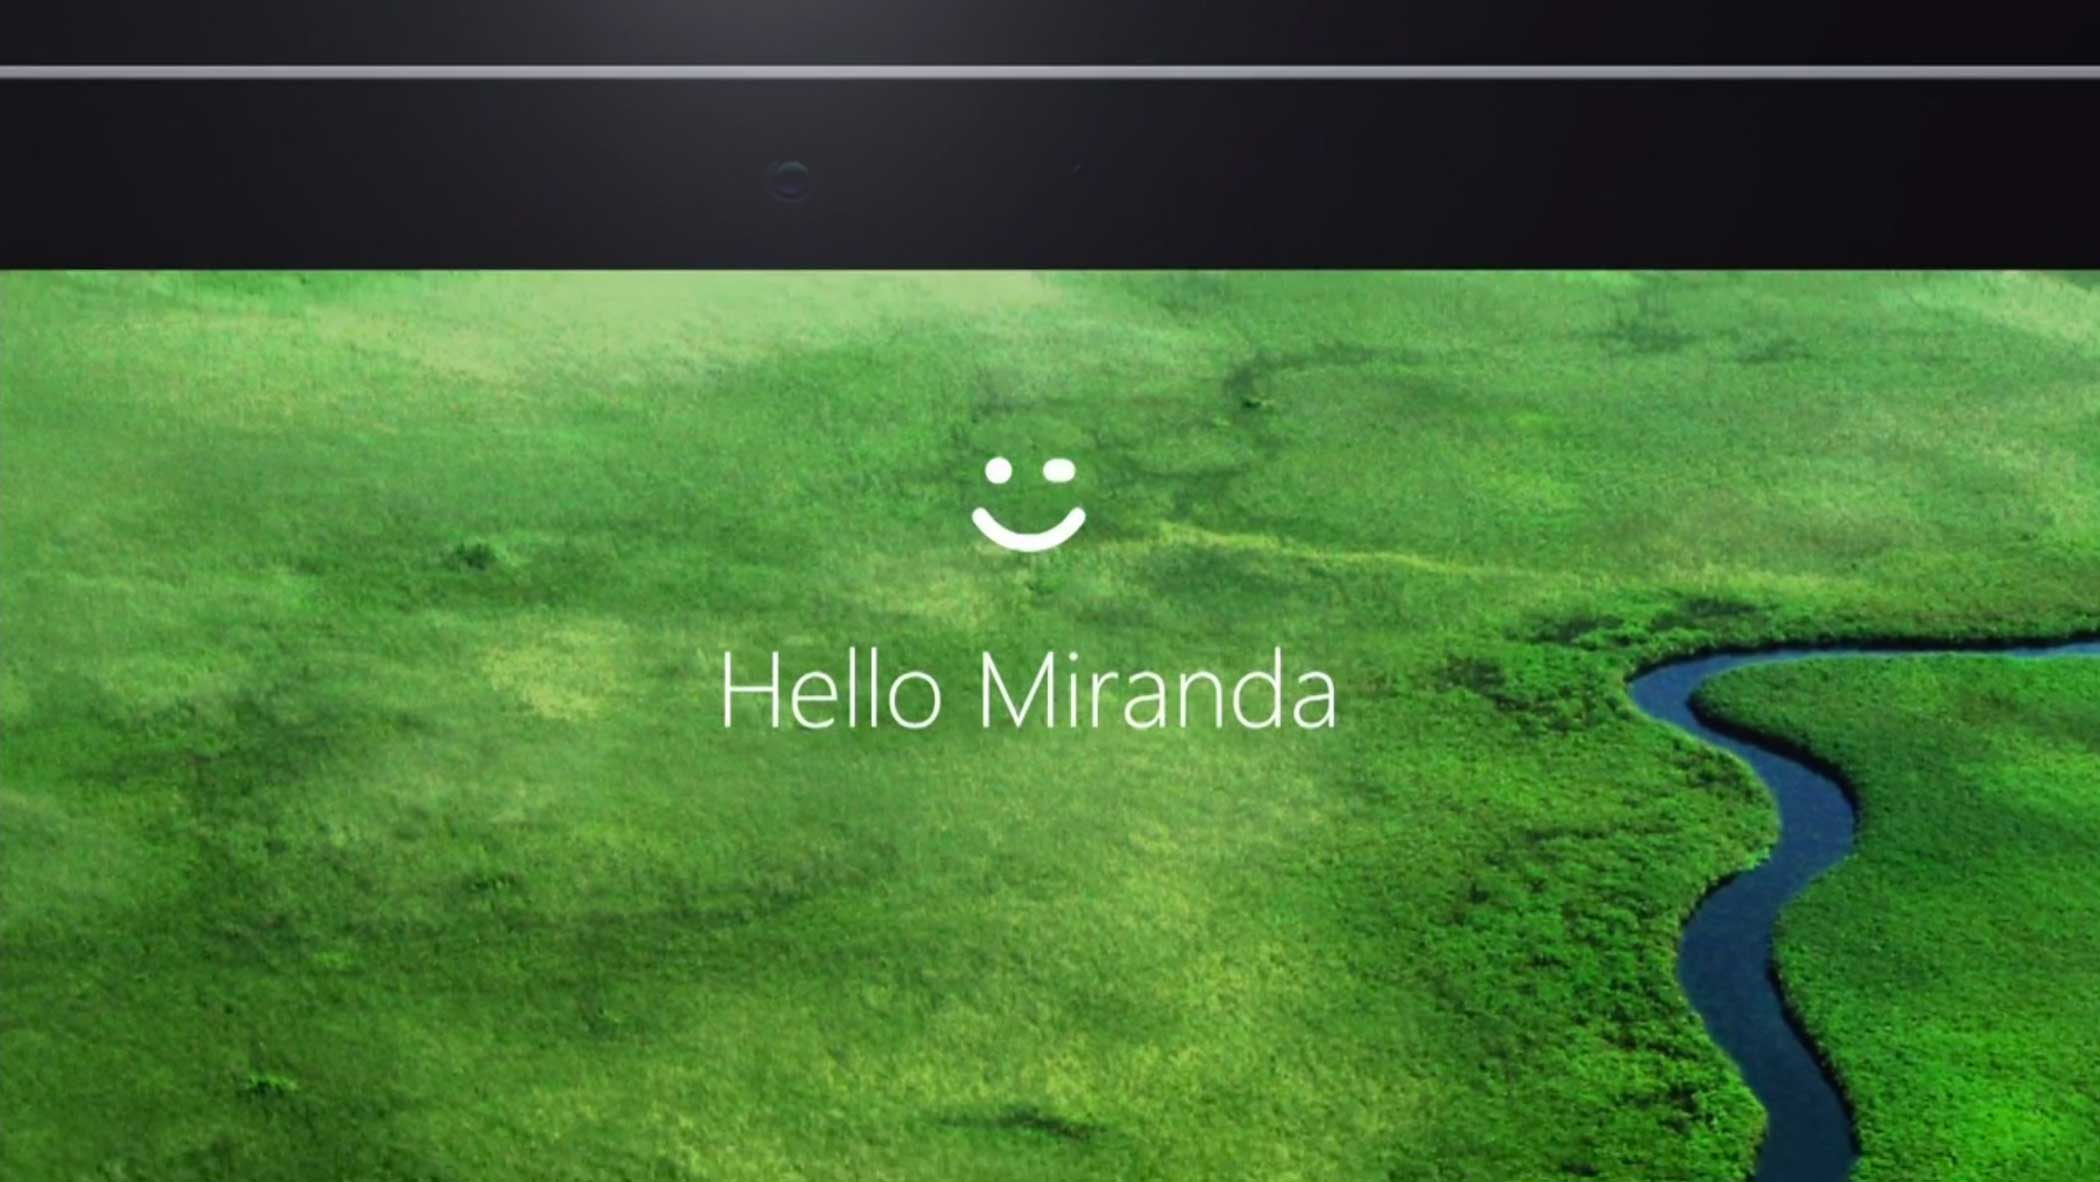 It's personal assistant Cortana will help with a variety of tasks.